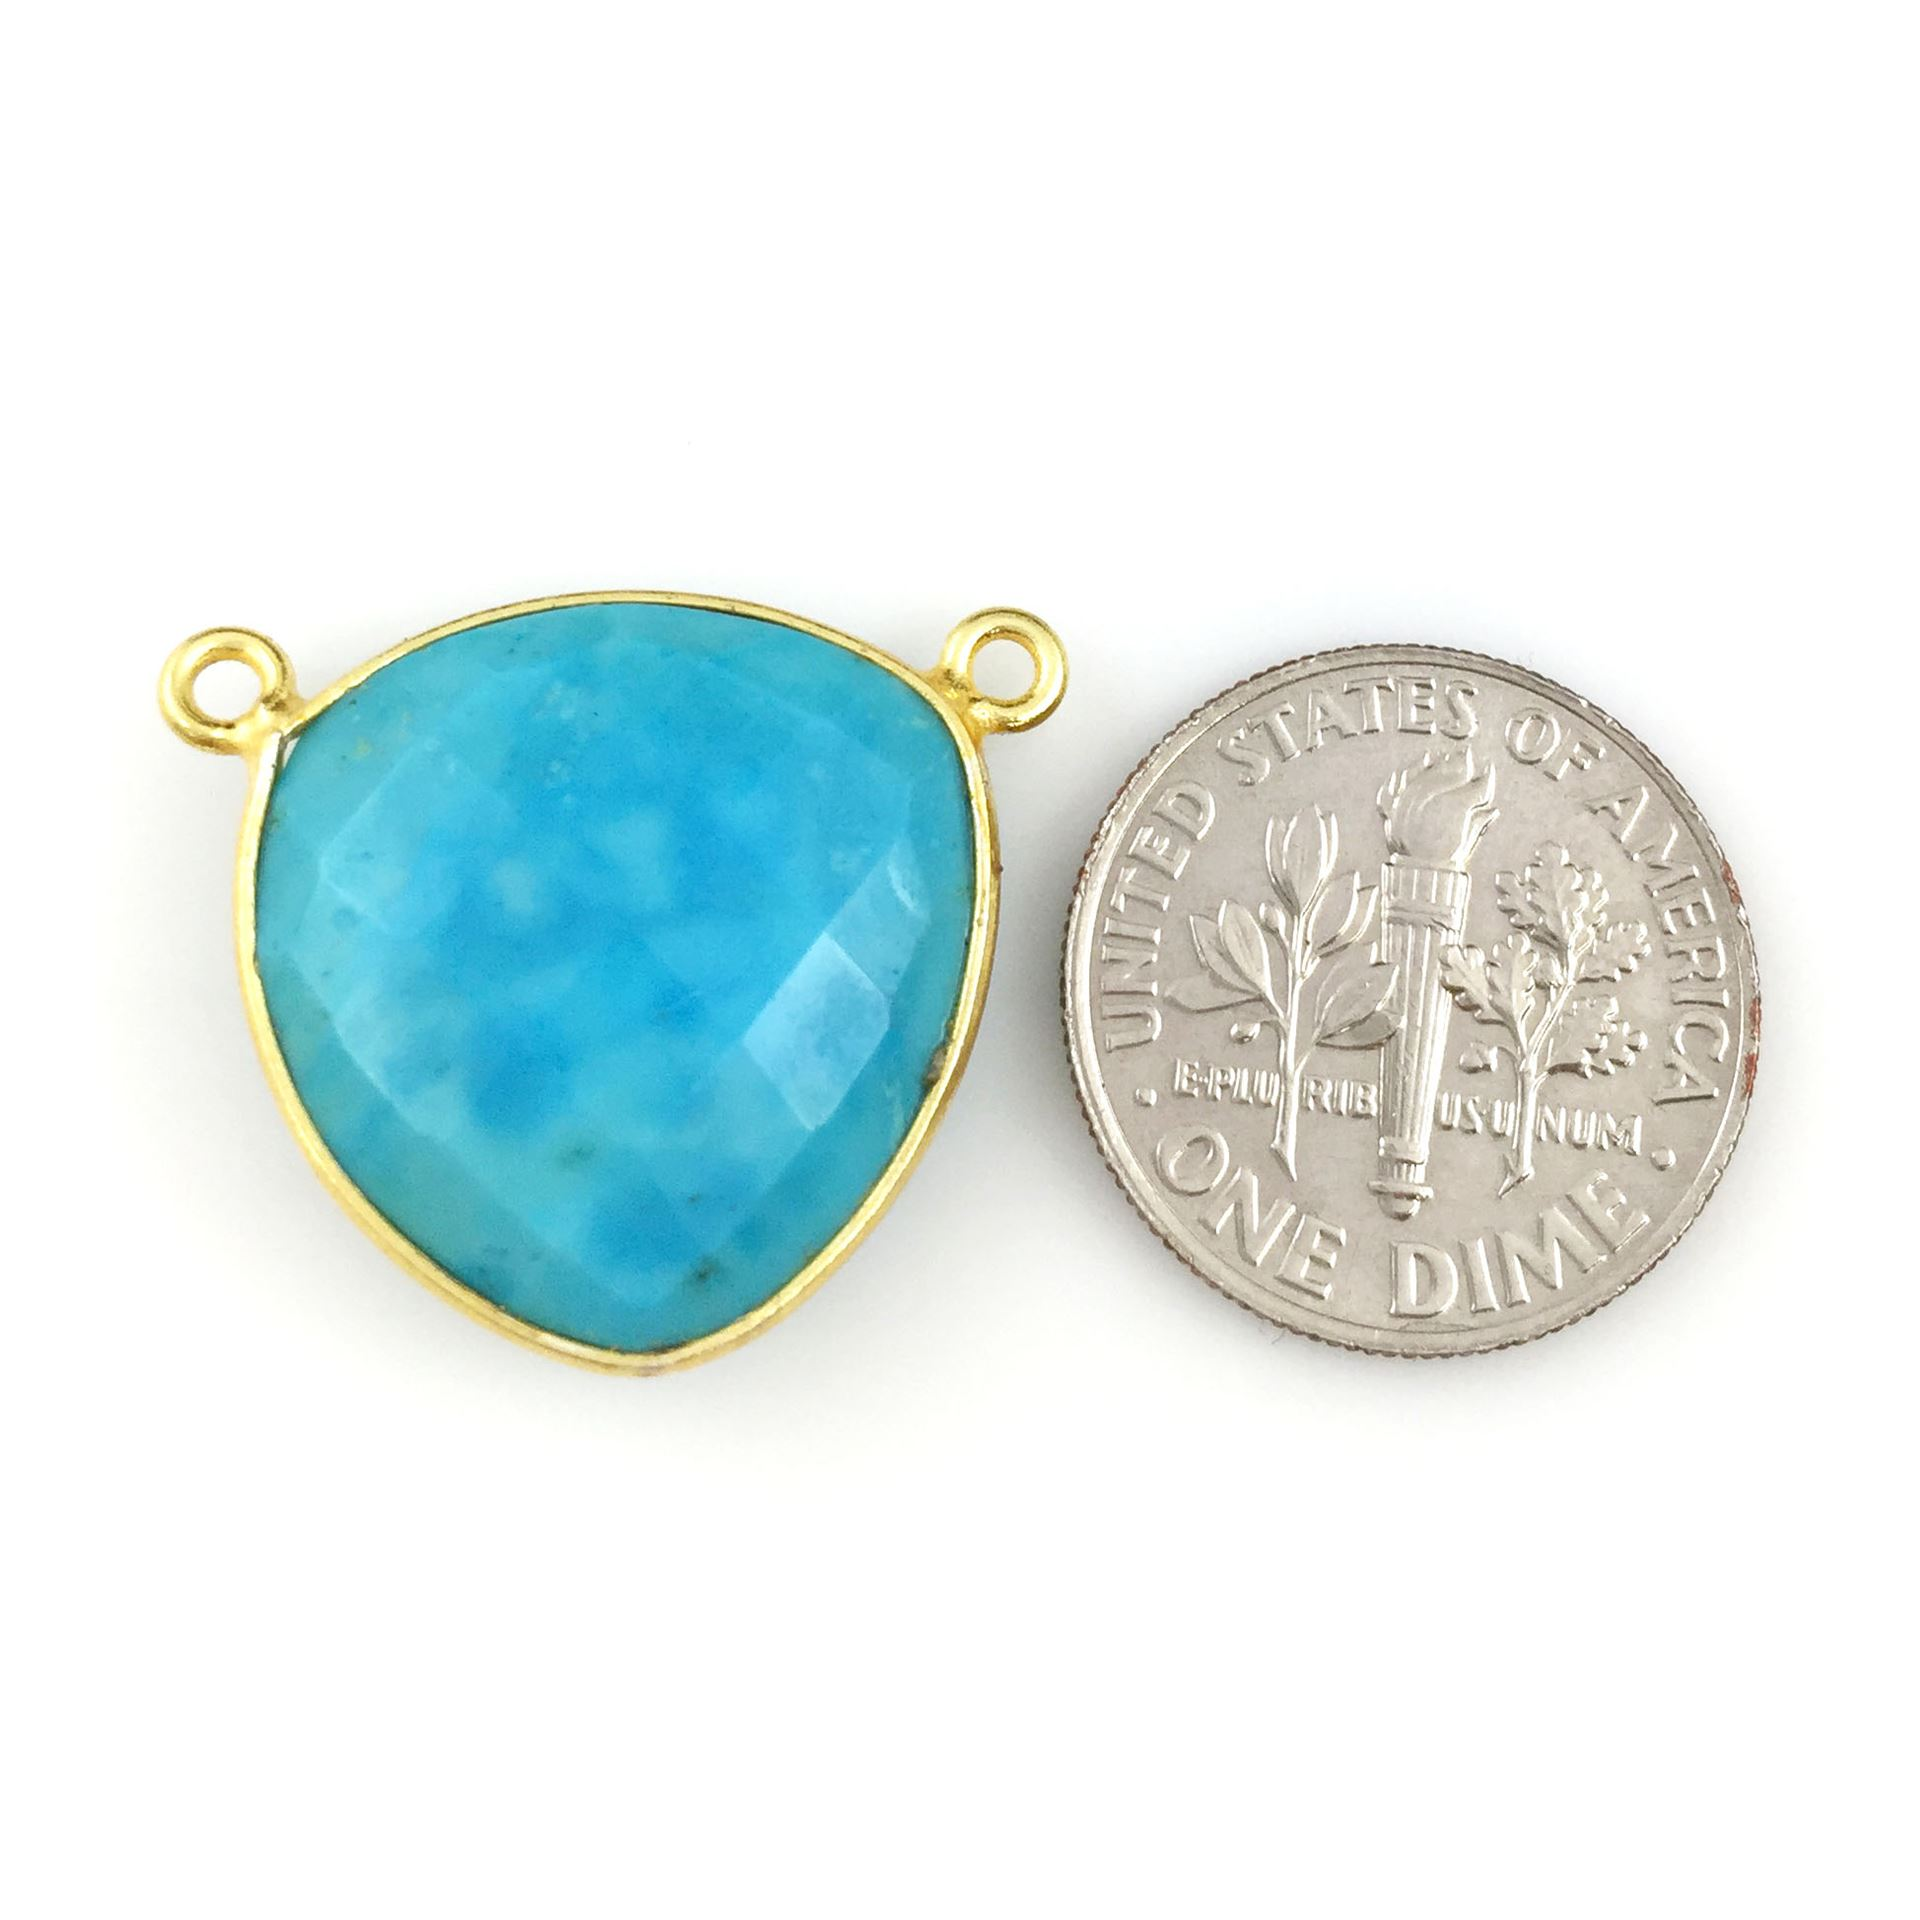 Bezel Gemstone Connector Pendant - Turquoise- Gold plated Sterling Silver - Large Trillion Shaped Faceted - 18 mm - 1 piece